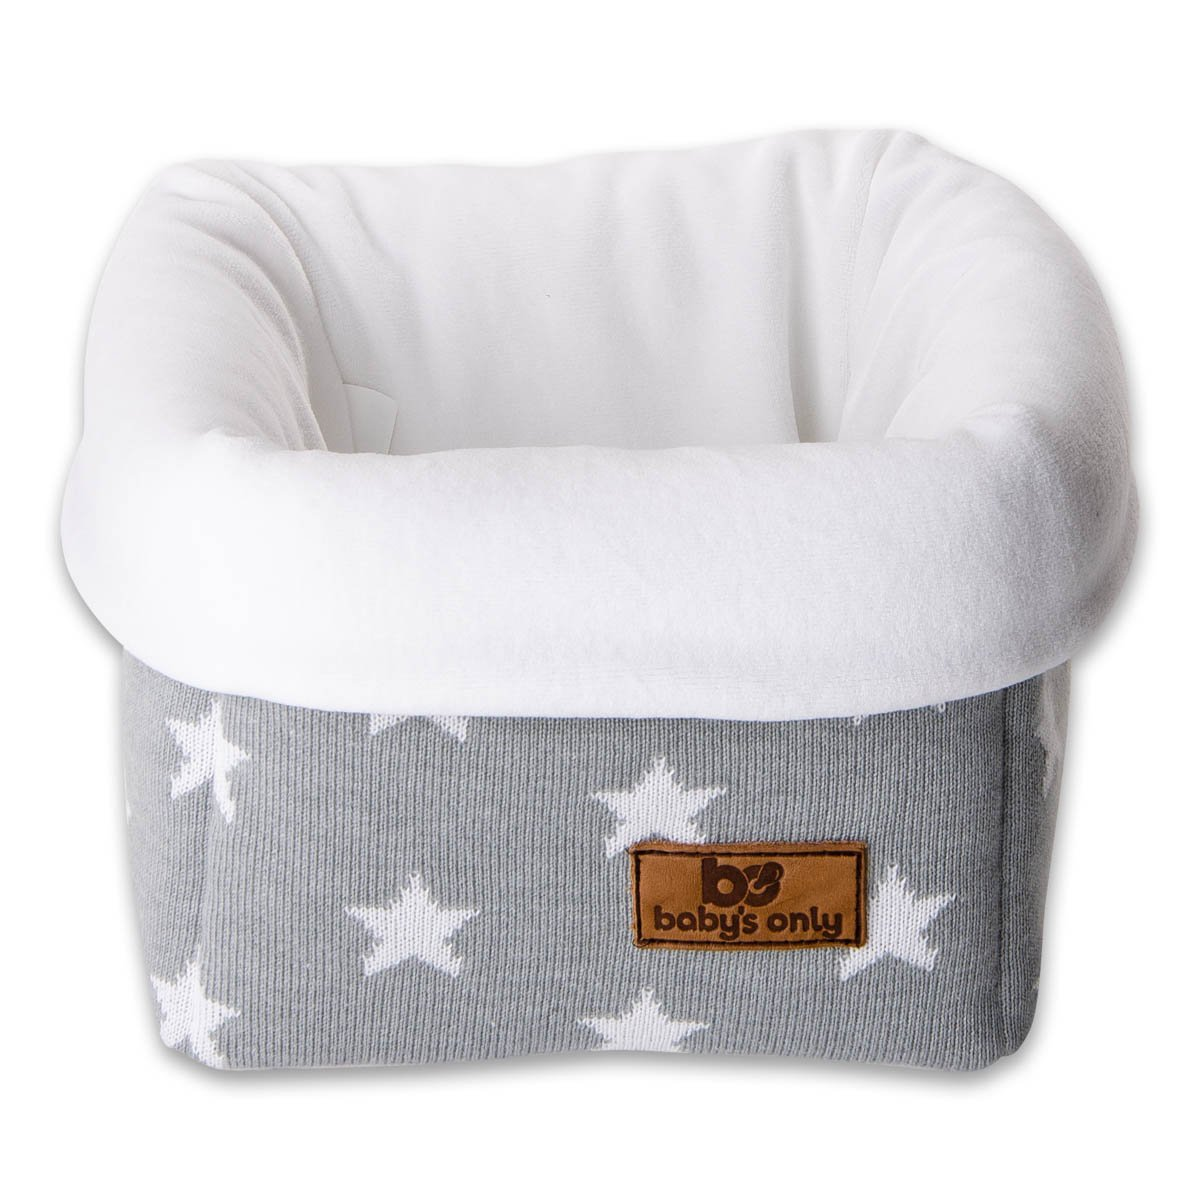 Baby's Only Corbeille de rangement Star gris et blanc - Gris Baby' s Only 913995